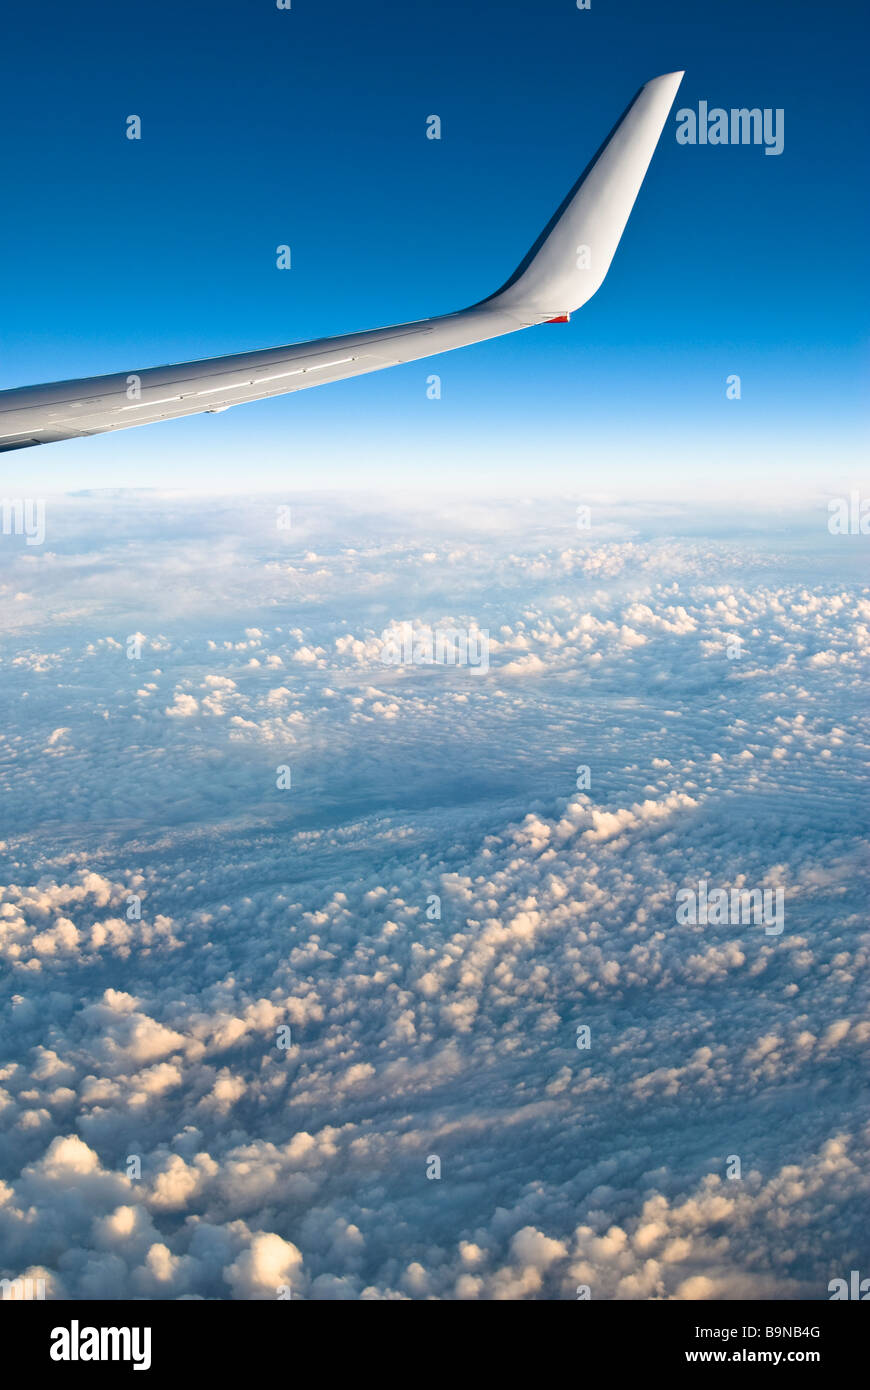 View through airliner window high above clouds - Stock Image